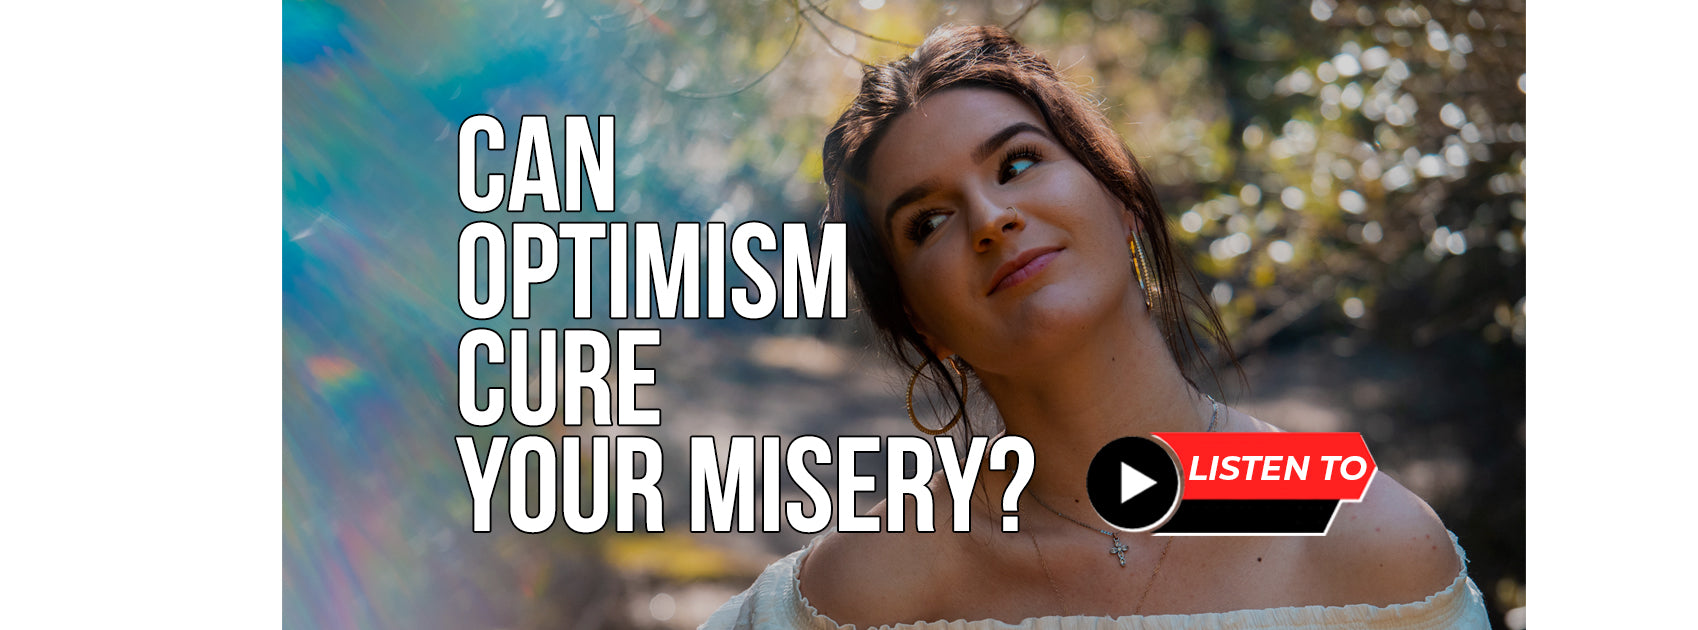 Can Optimism Cure Your Misery?